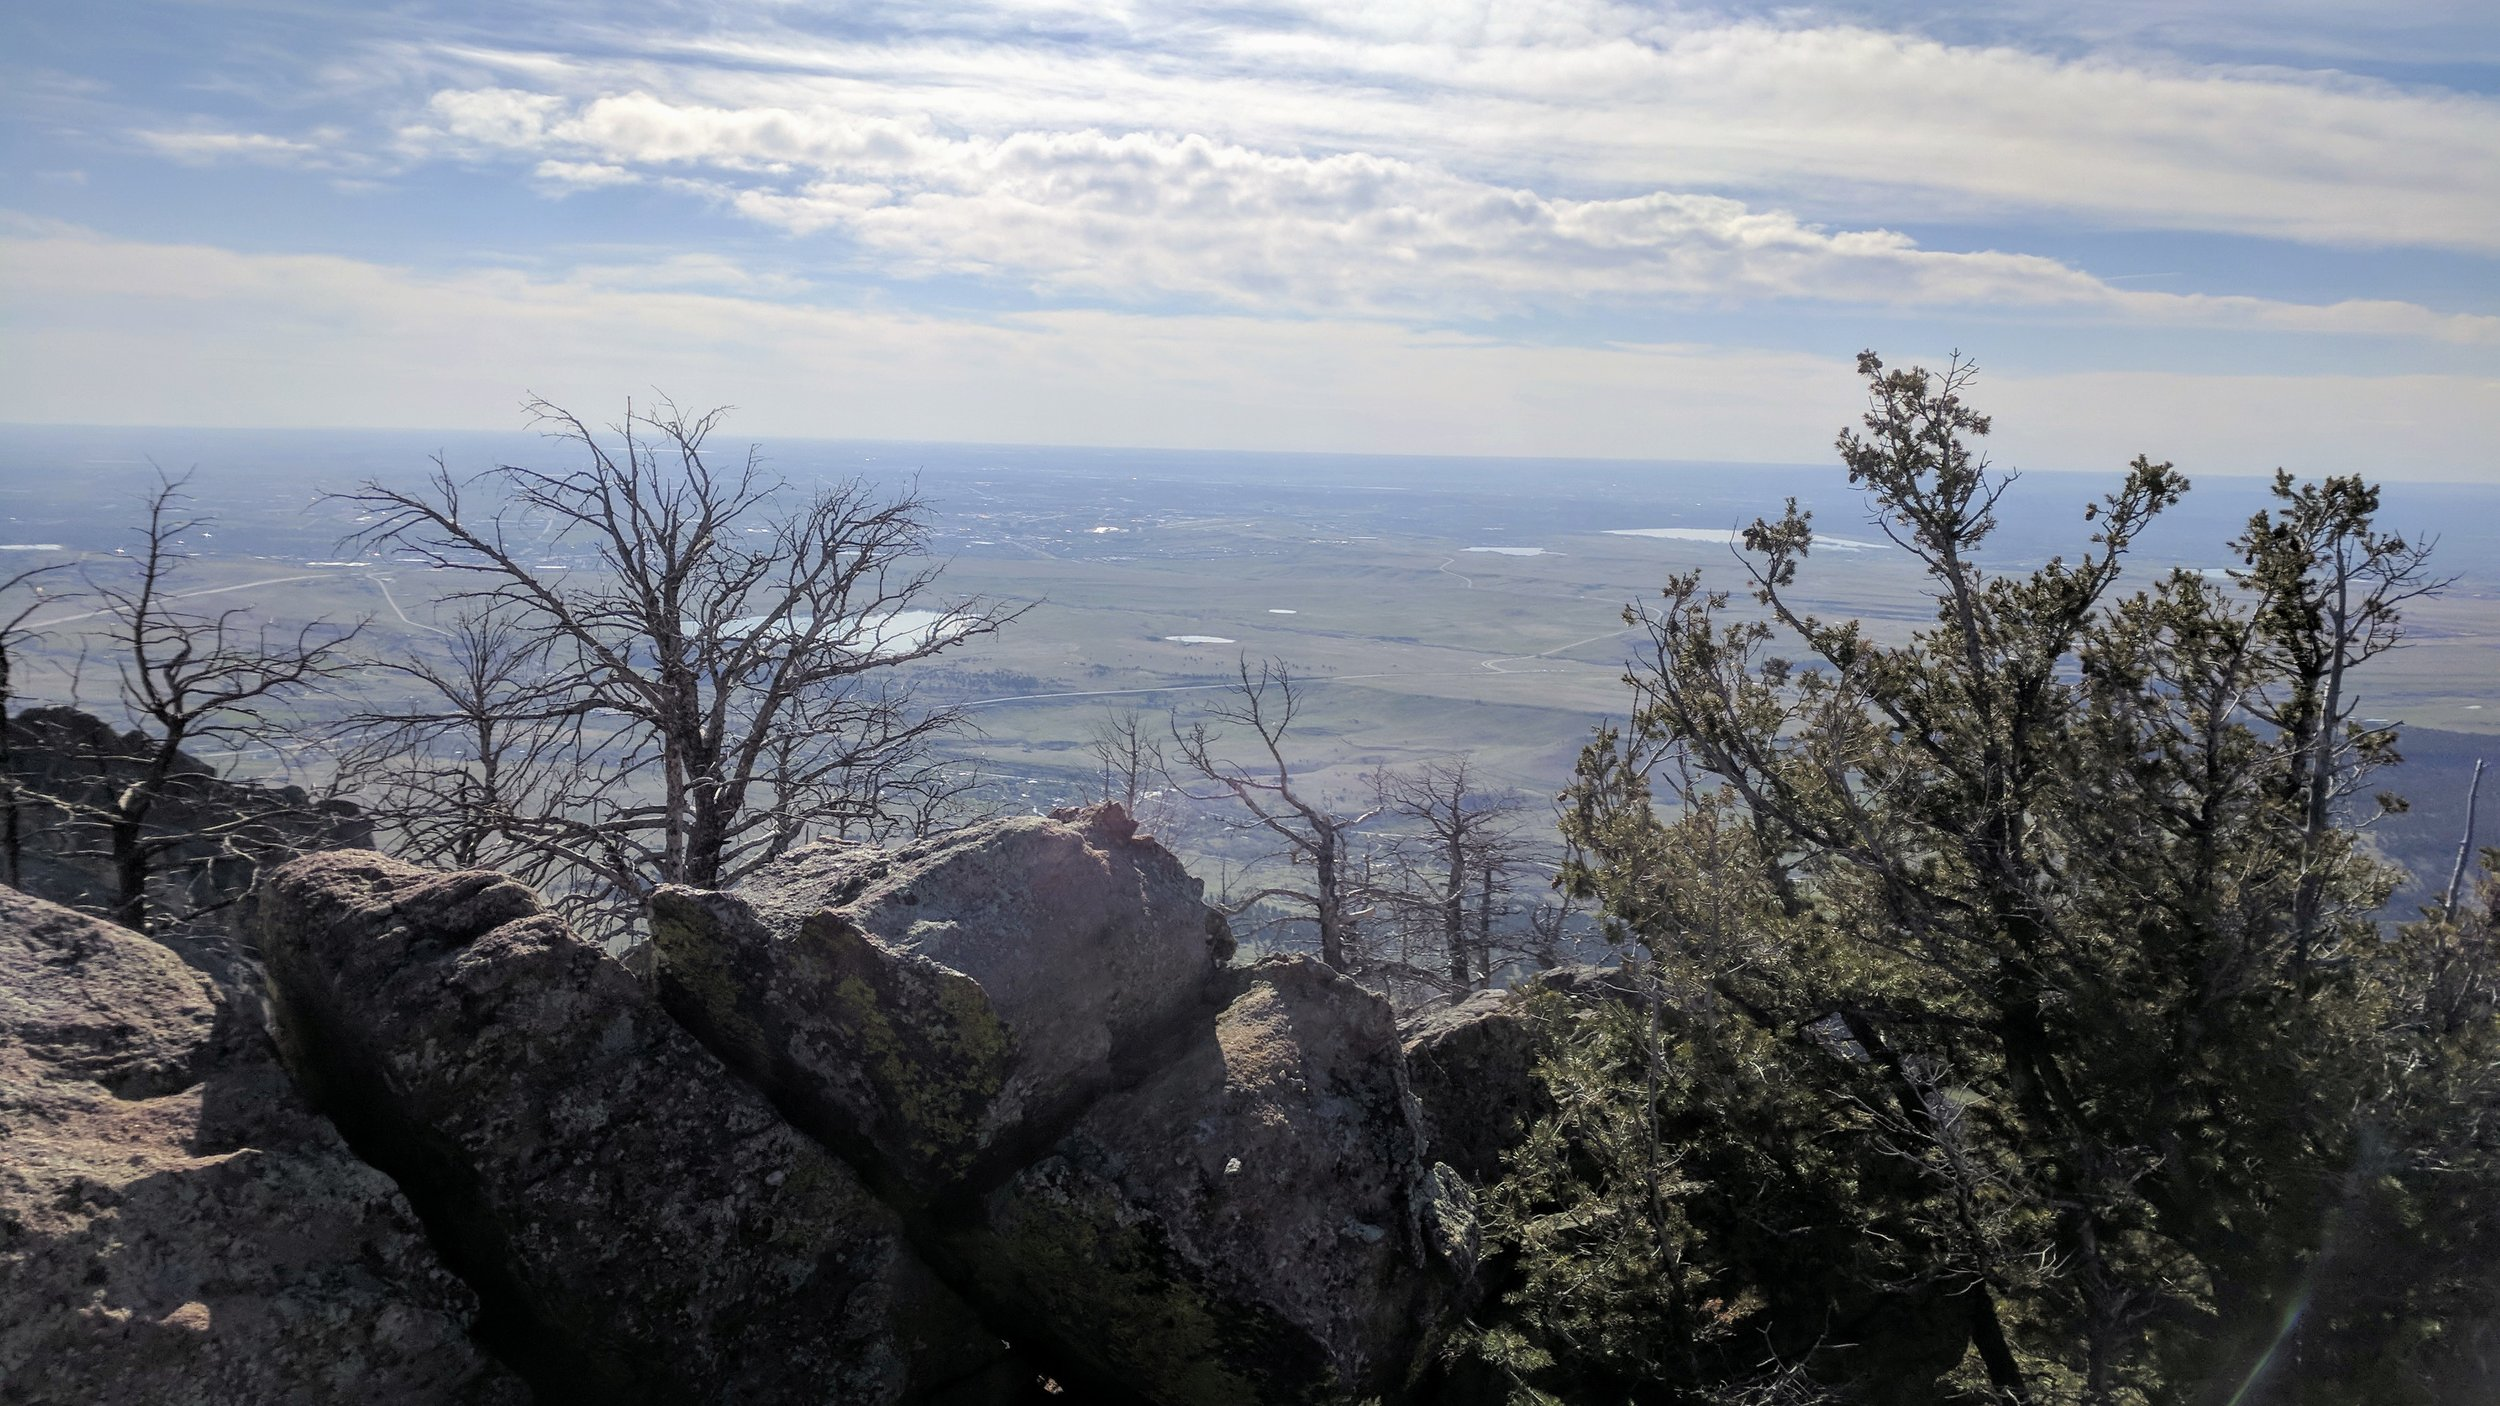 After a rocky scramble up the side of South Boulder Peak, tag the summit (8,549' -- the tallest of the Traverse) and enjoy the view over Boulder to the east...